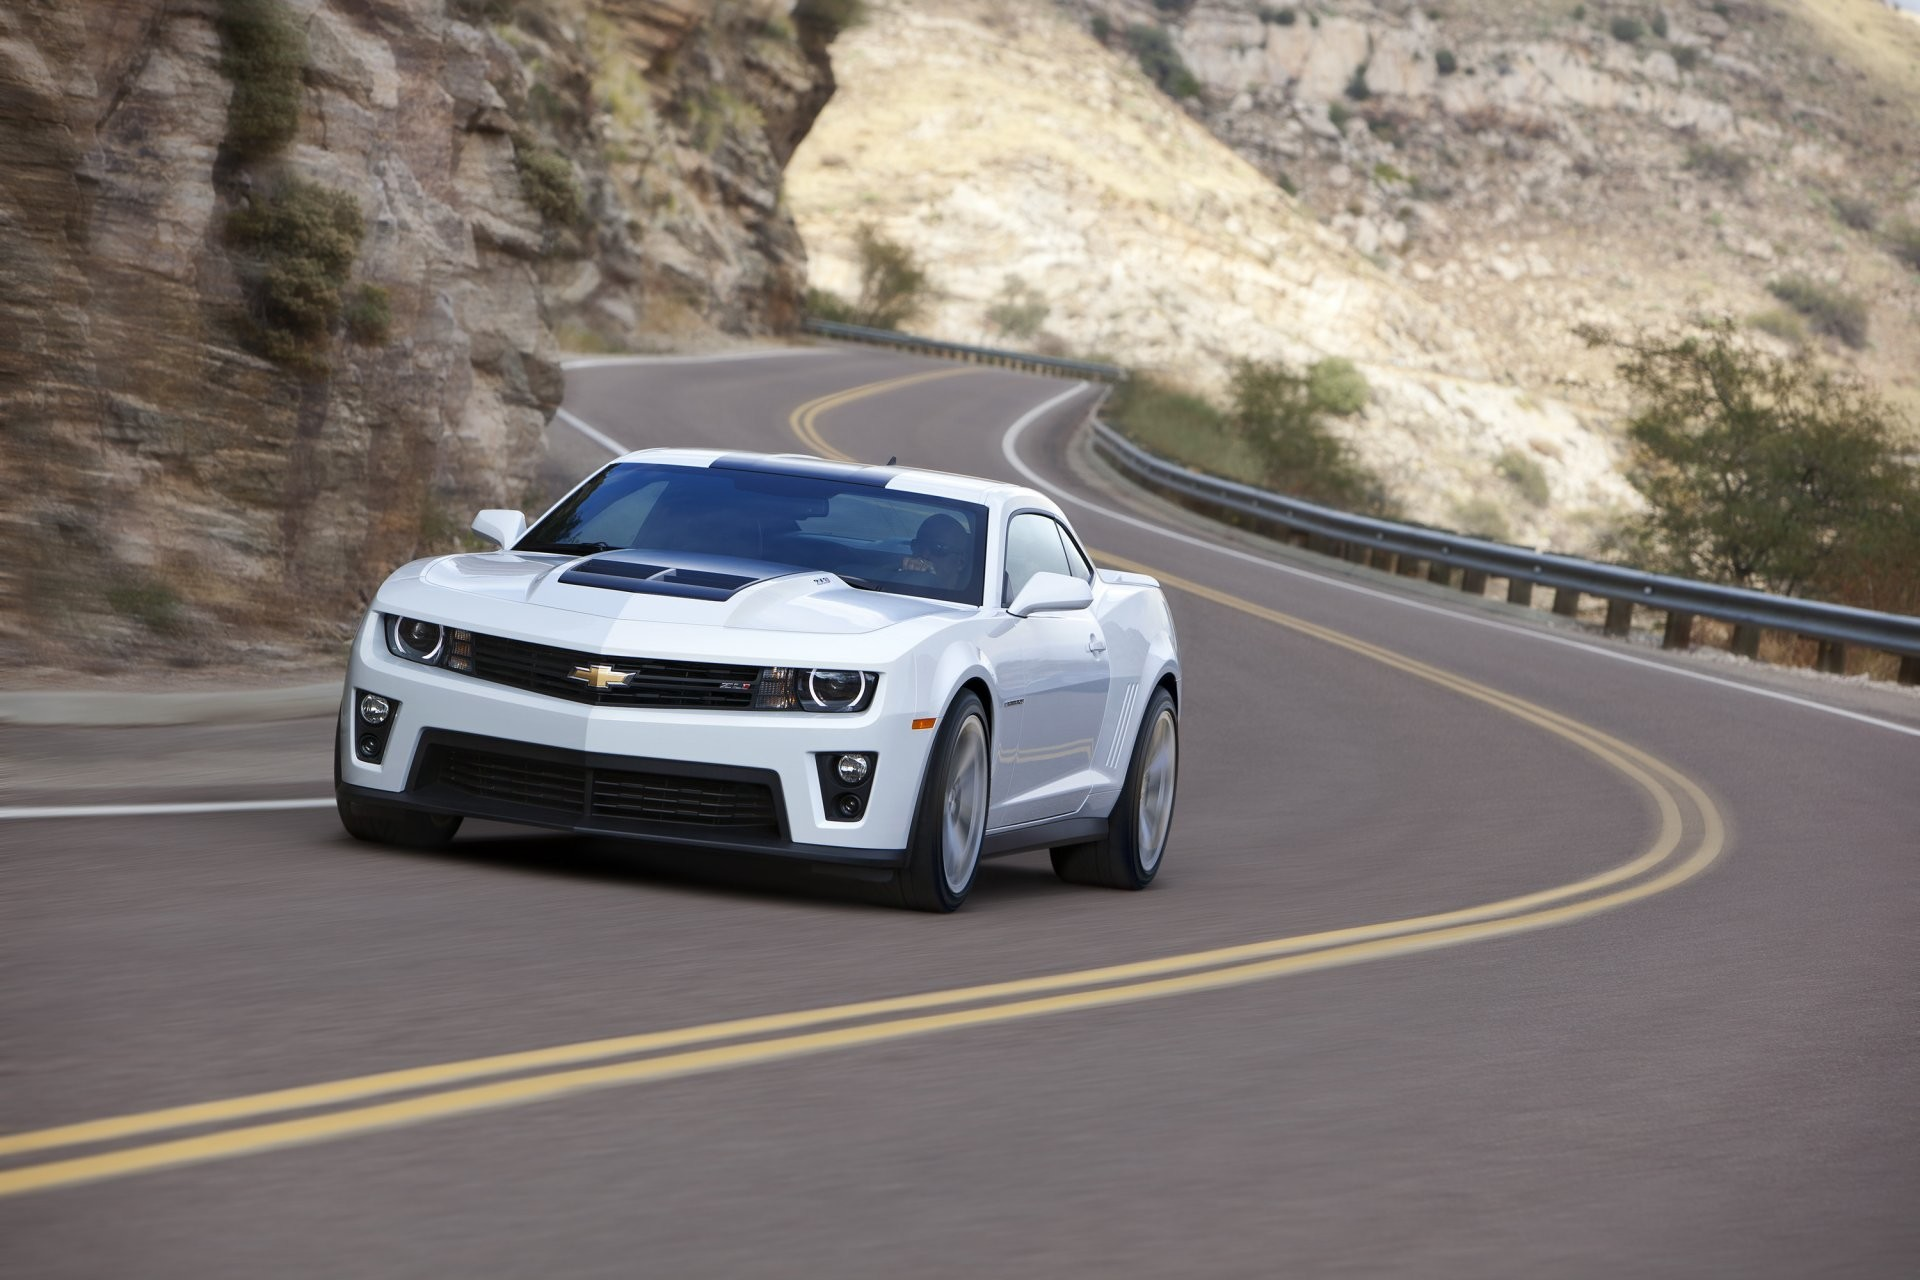 Res: 1920x1280, chevrolet camaro zl1 white road counting rotation rock bump